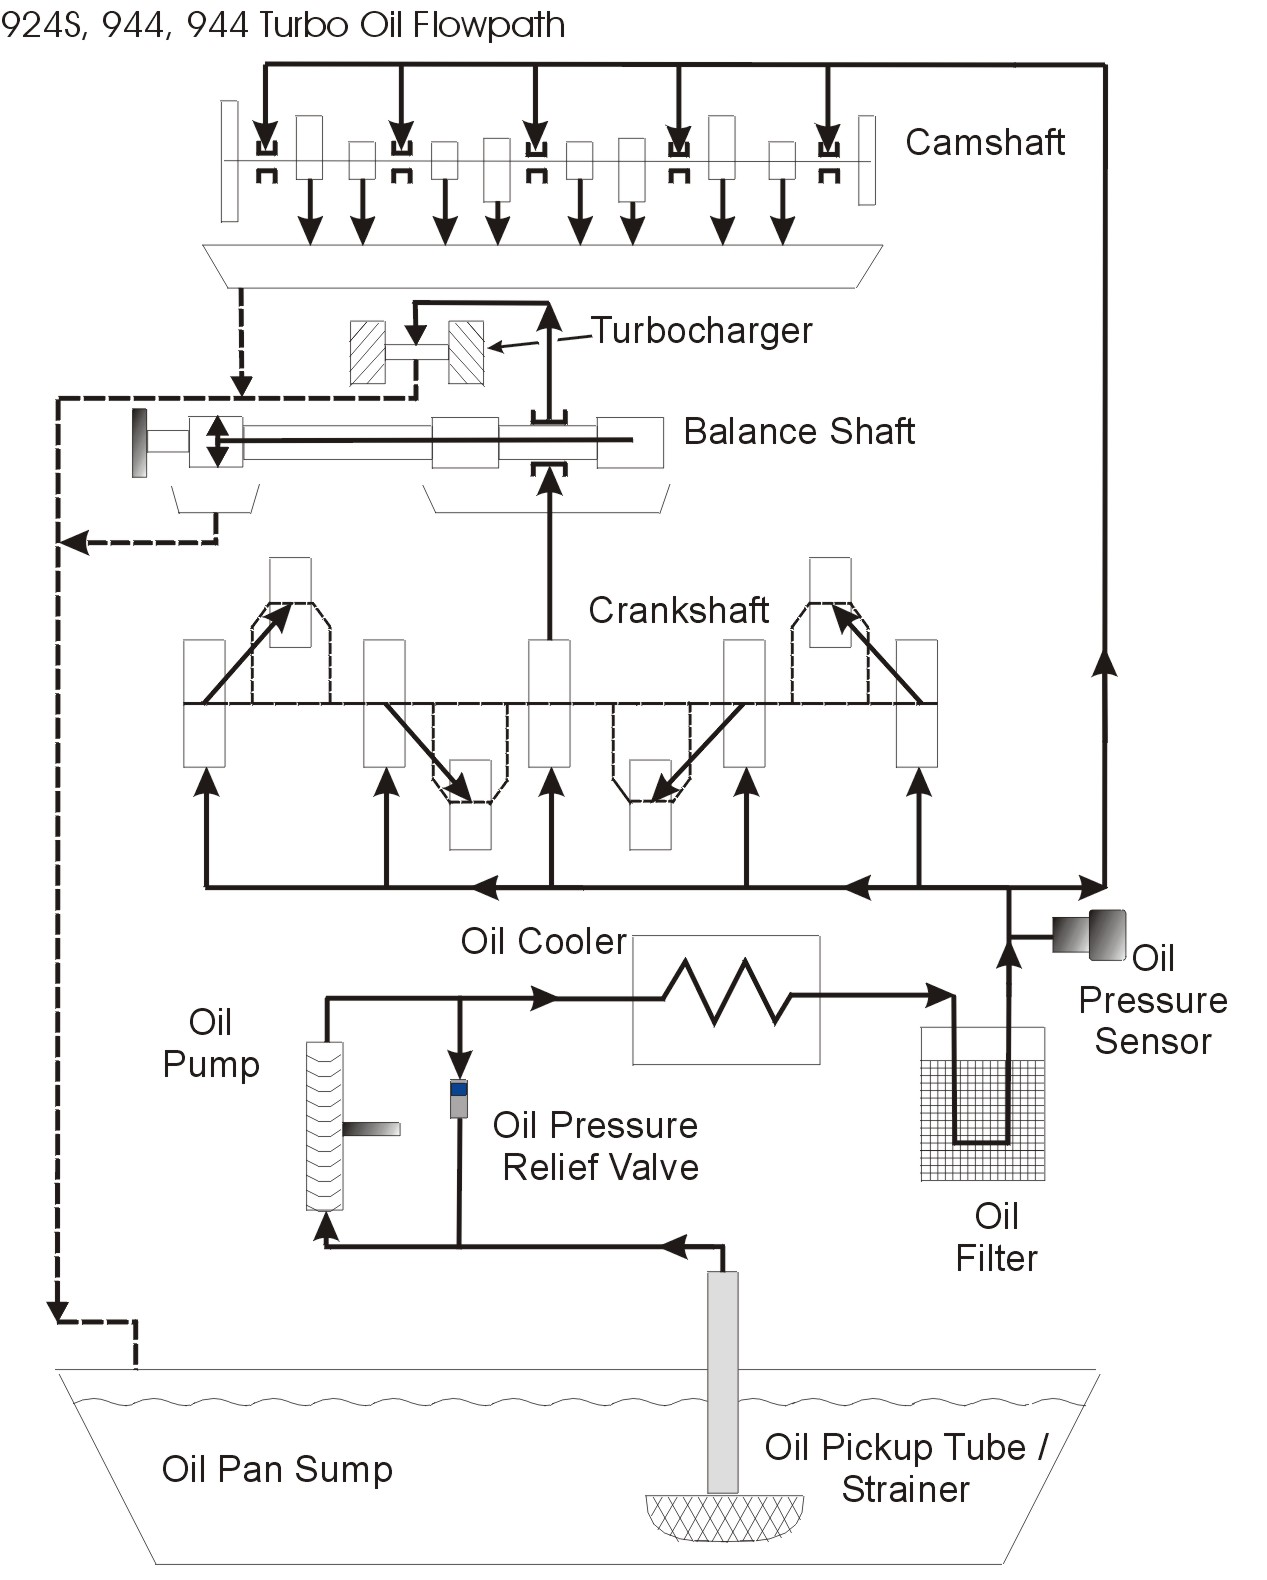 oil flow diagram oil system diagram dt466 oil system diagram \u2022 wiring diagram  at n-0.co